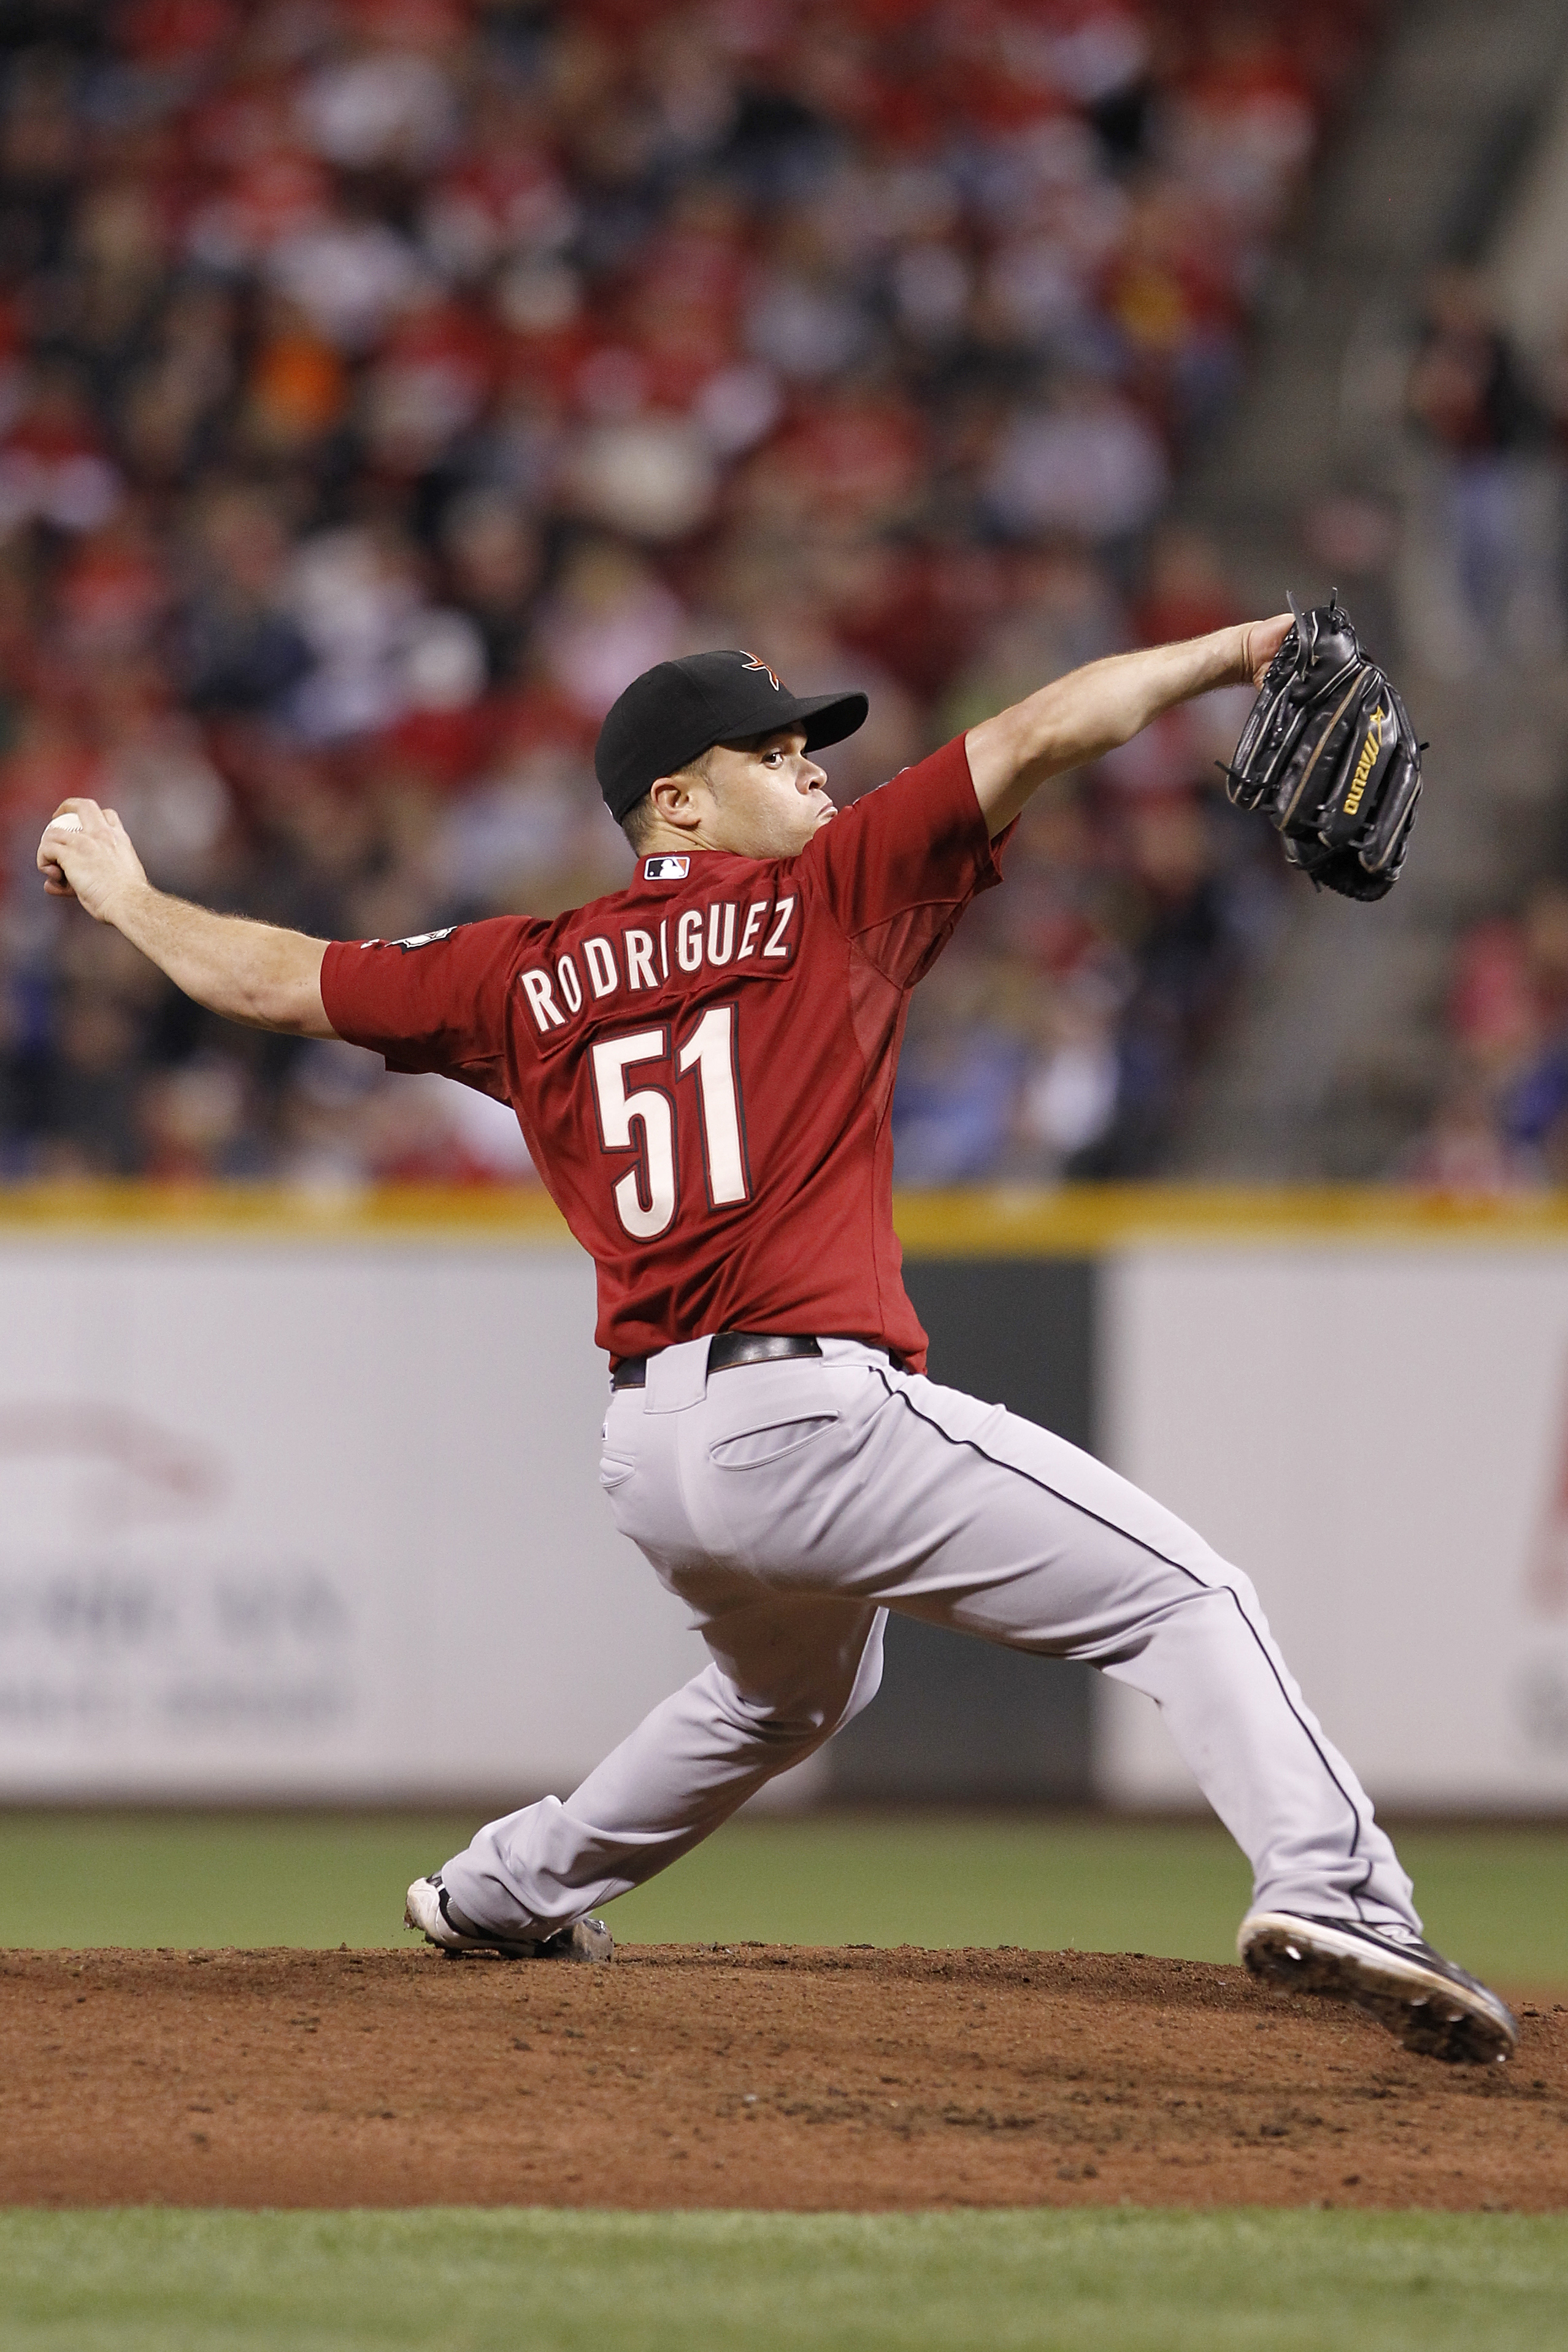 CINCINNATI, OH - SEPTEMBER 28: Wandy Rodriguez #51 of the Houston Astros pitches against the Cincinnati Reds at Great American Ball Park on September 28, 2010 in Cincinnati, Ohio. The Reds won 3-2 to clinch the NL Central Division title. (Photo by Joe Rob